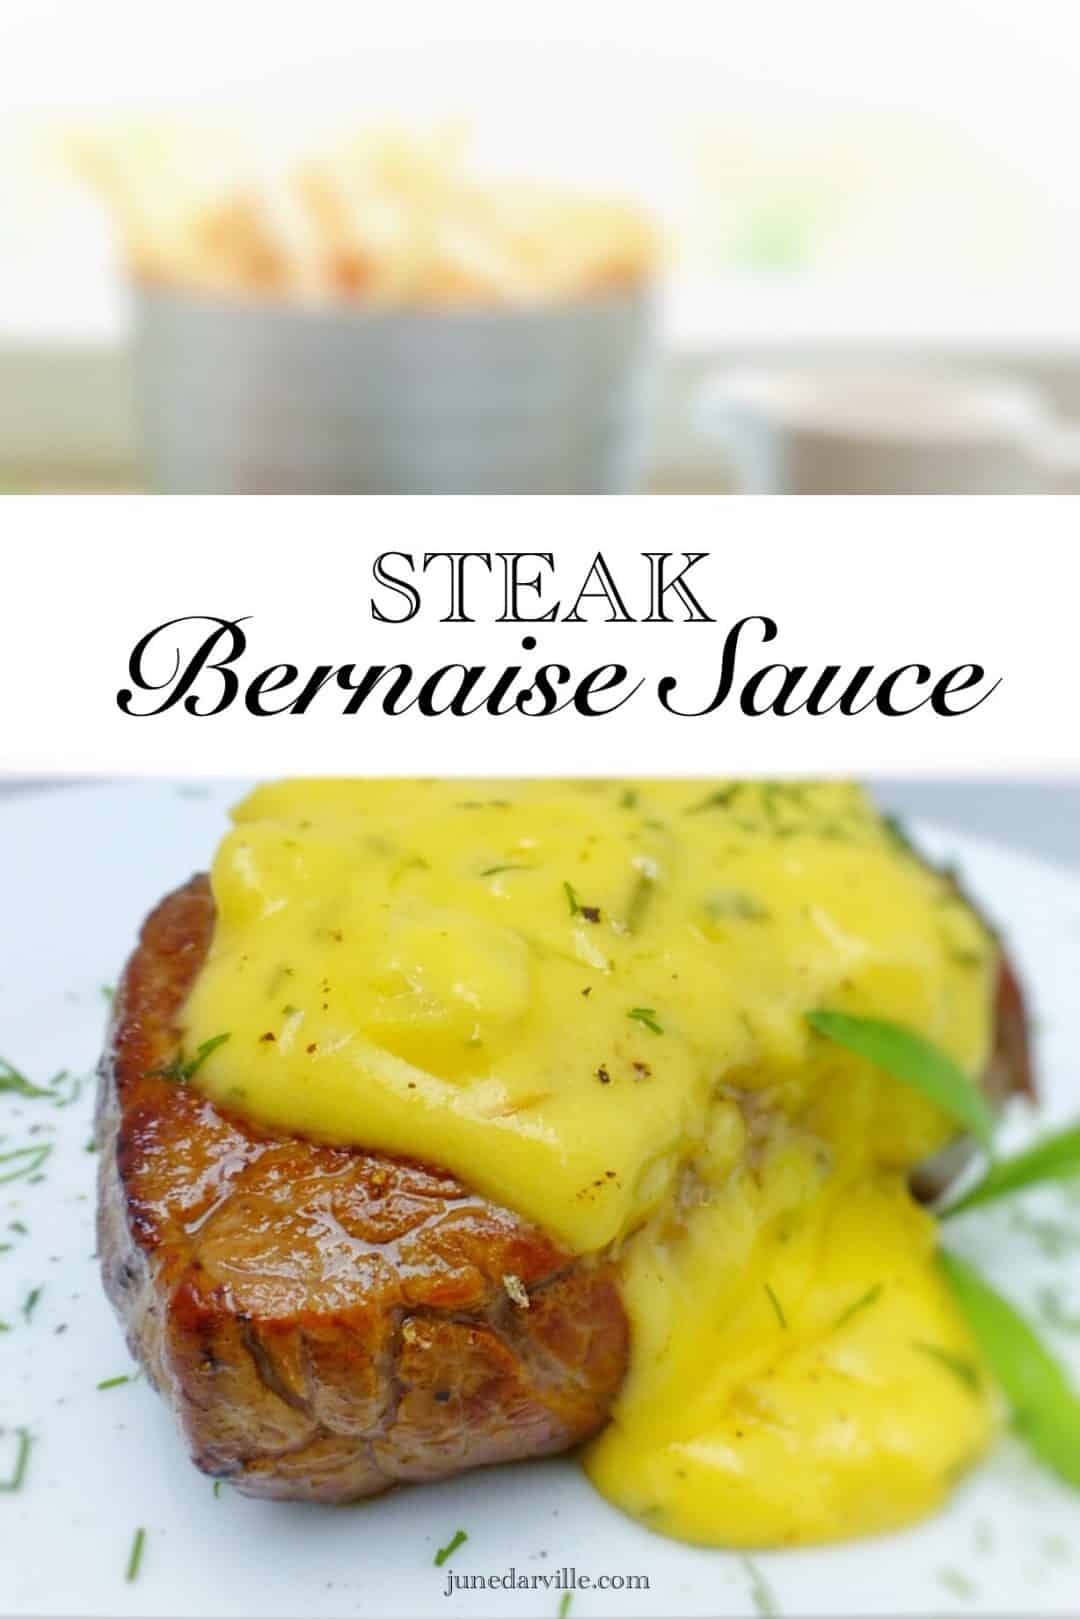 Youu0027ll Love This Bernaise Sauce Recipe: Homemade Creamy Tarragon And Butter  Sauce For